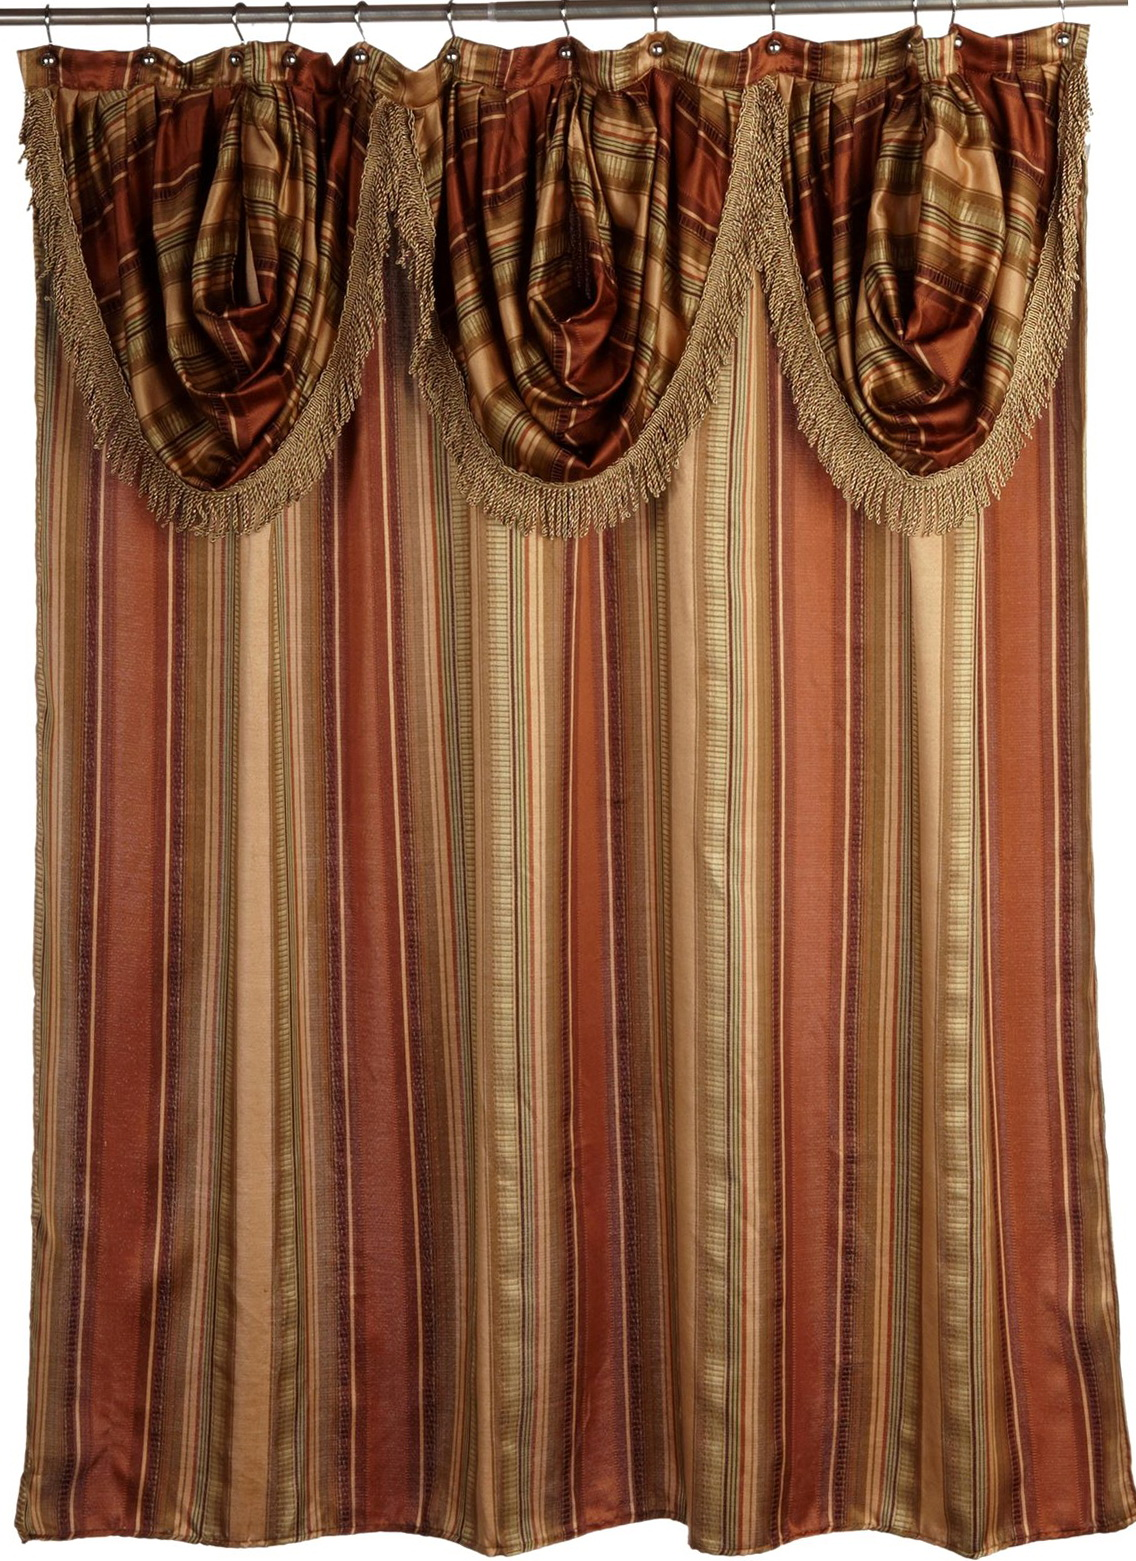 Curtains With Valances Attached